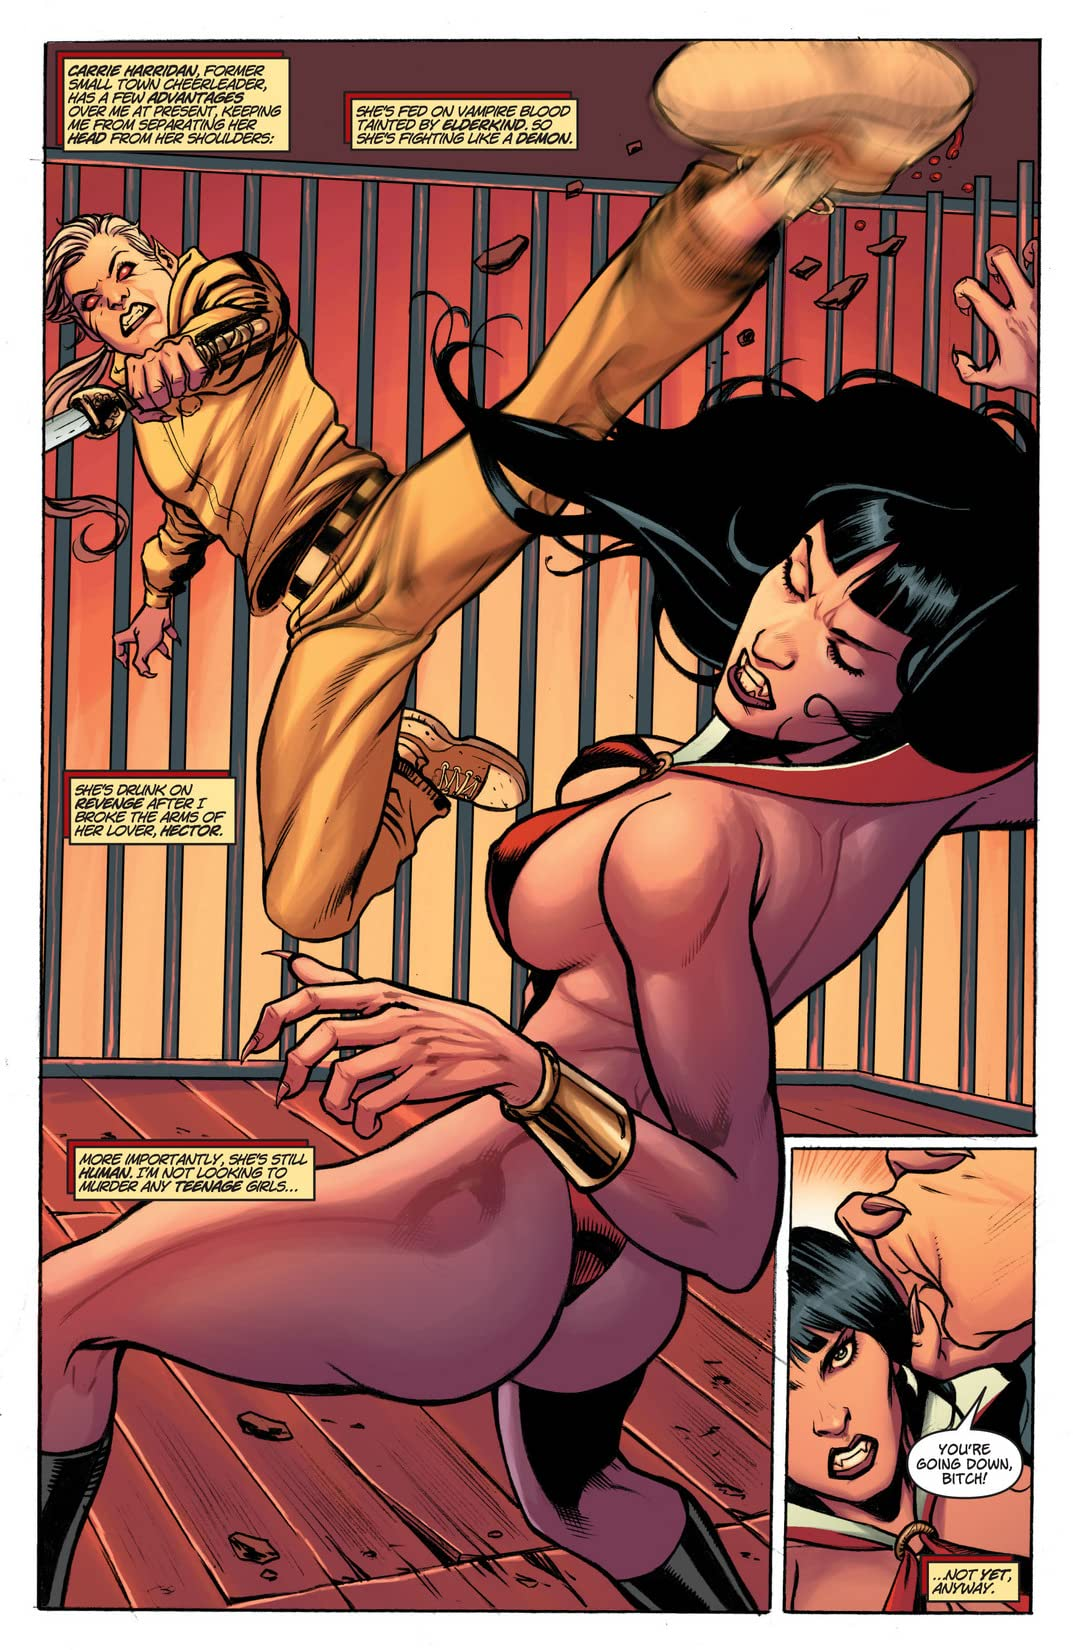 Vampirella: Red Room #2